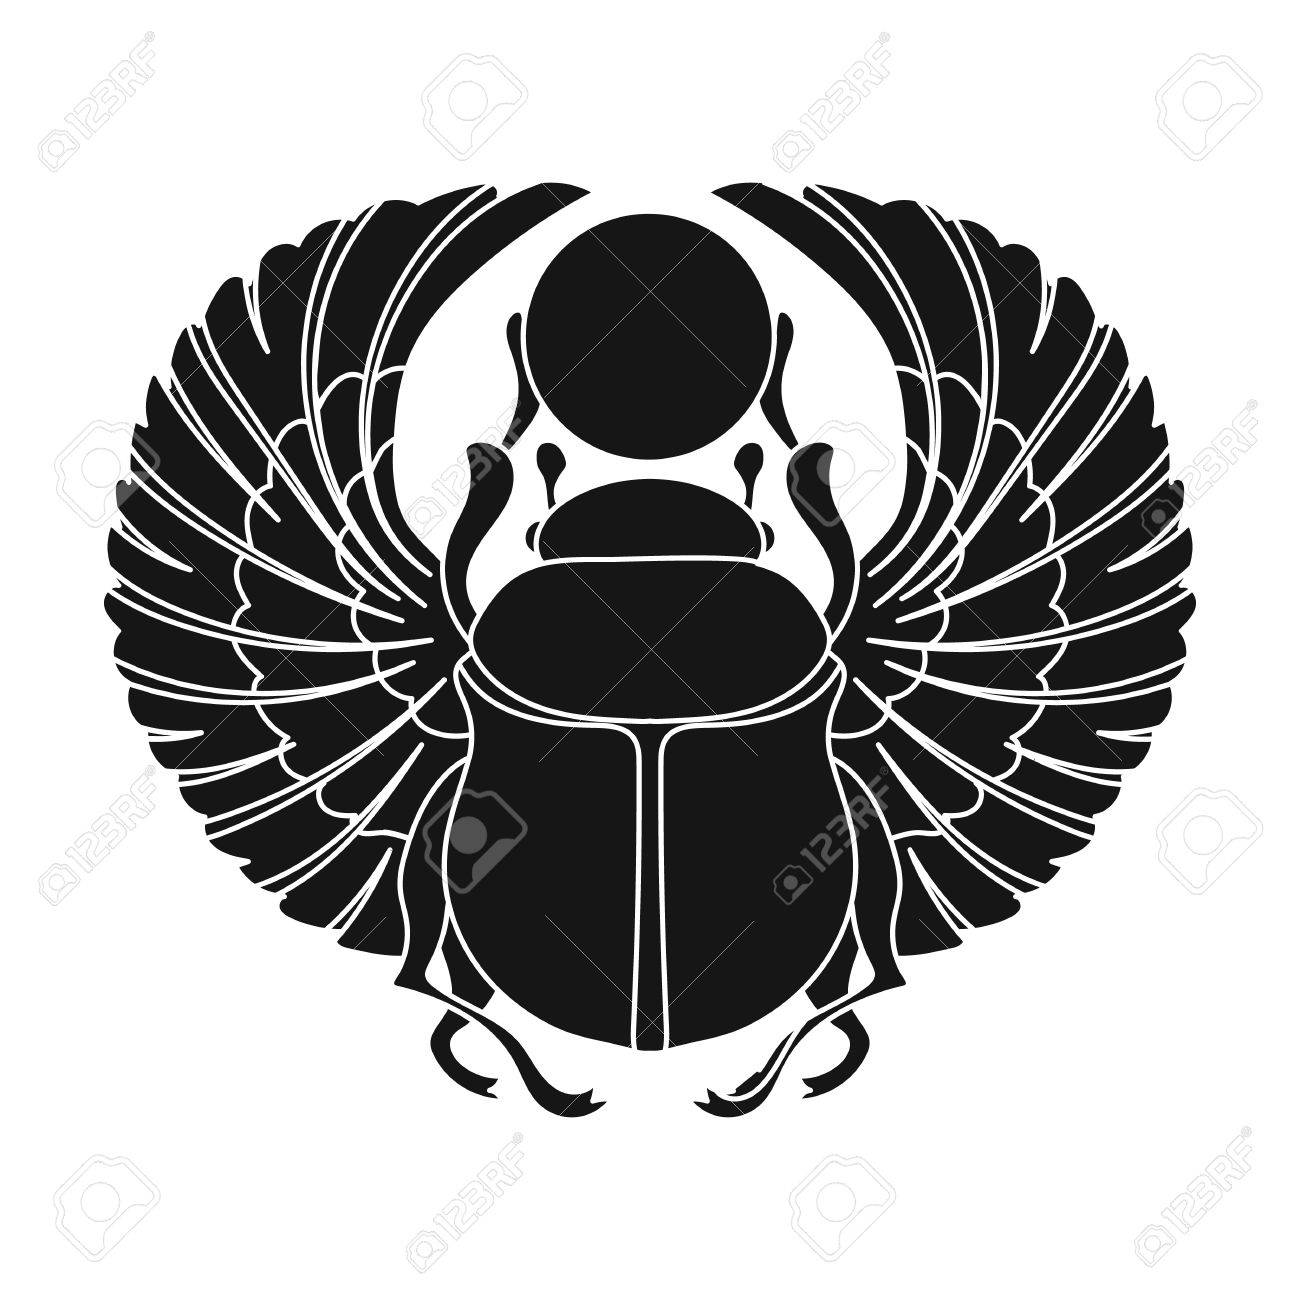 Scarab icon in black style isolated on white background. Ancient Egypt symbol vector illustration. - 69245092